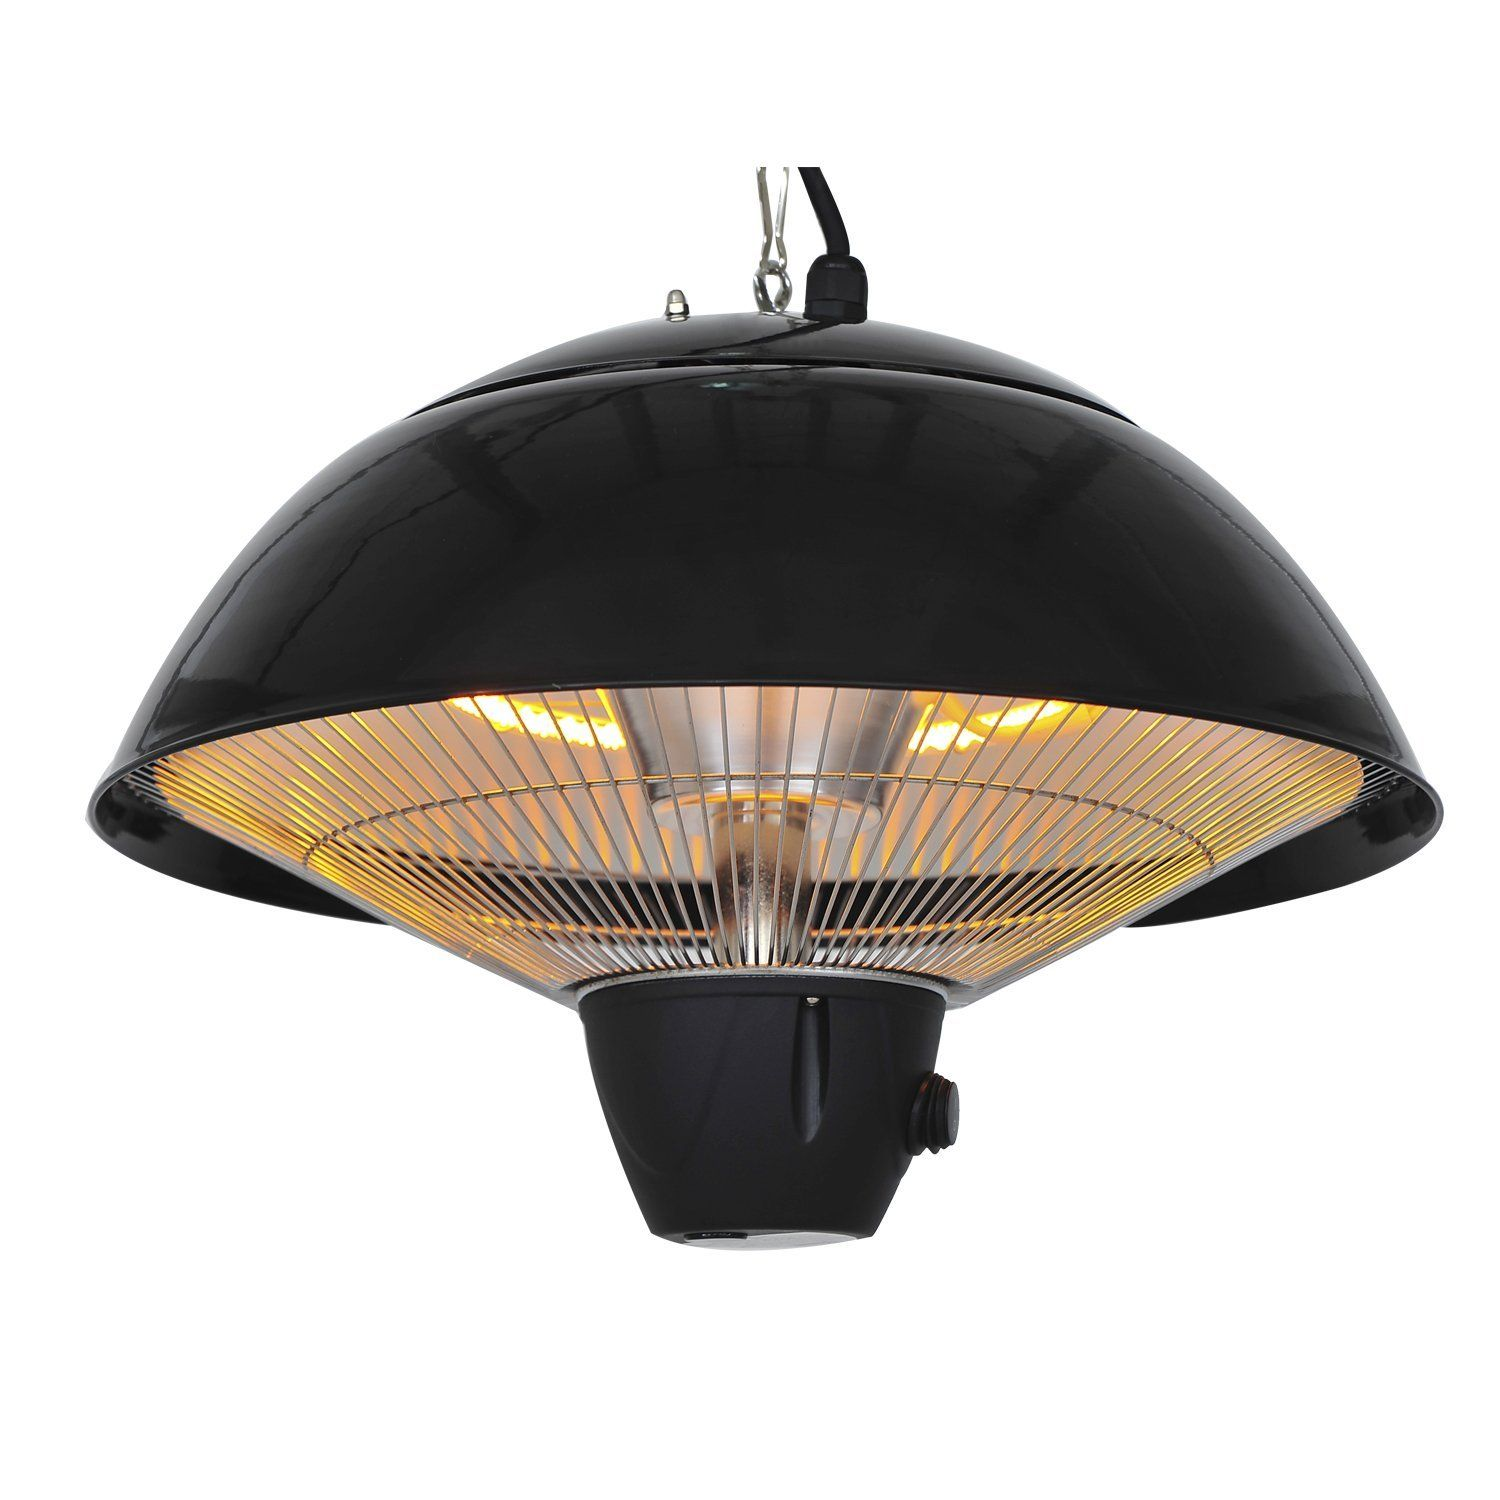 Outsunny 1500 W Outdoor Ceiling Mounted Aluminium Halogen